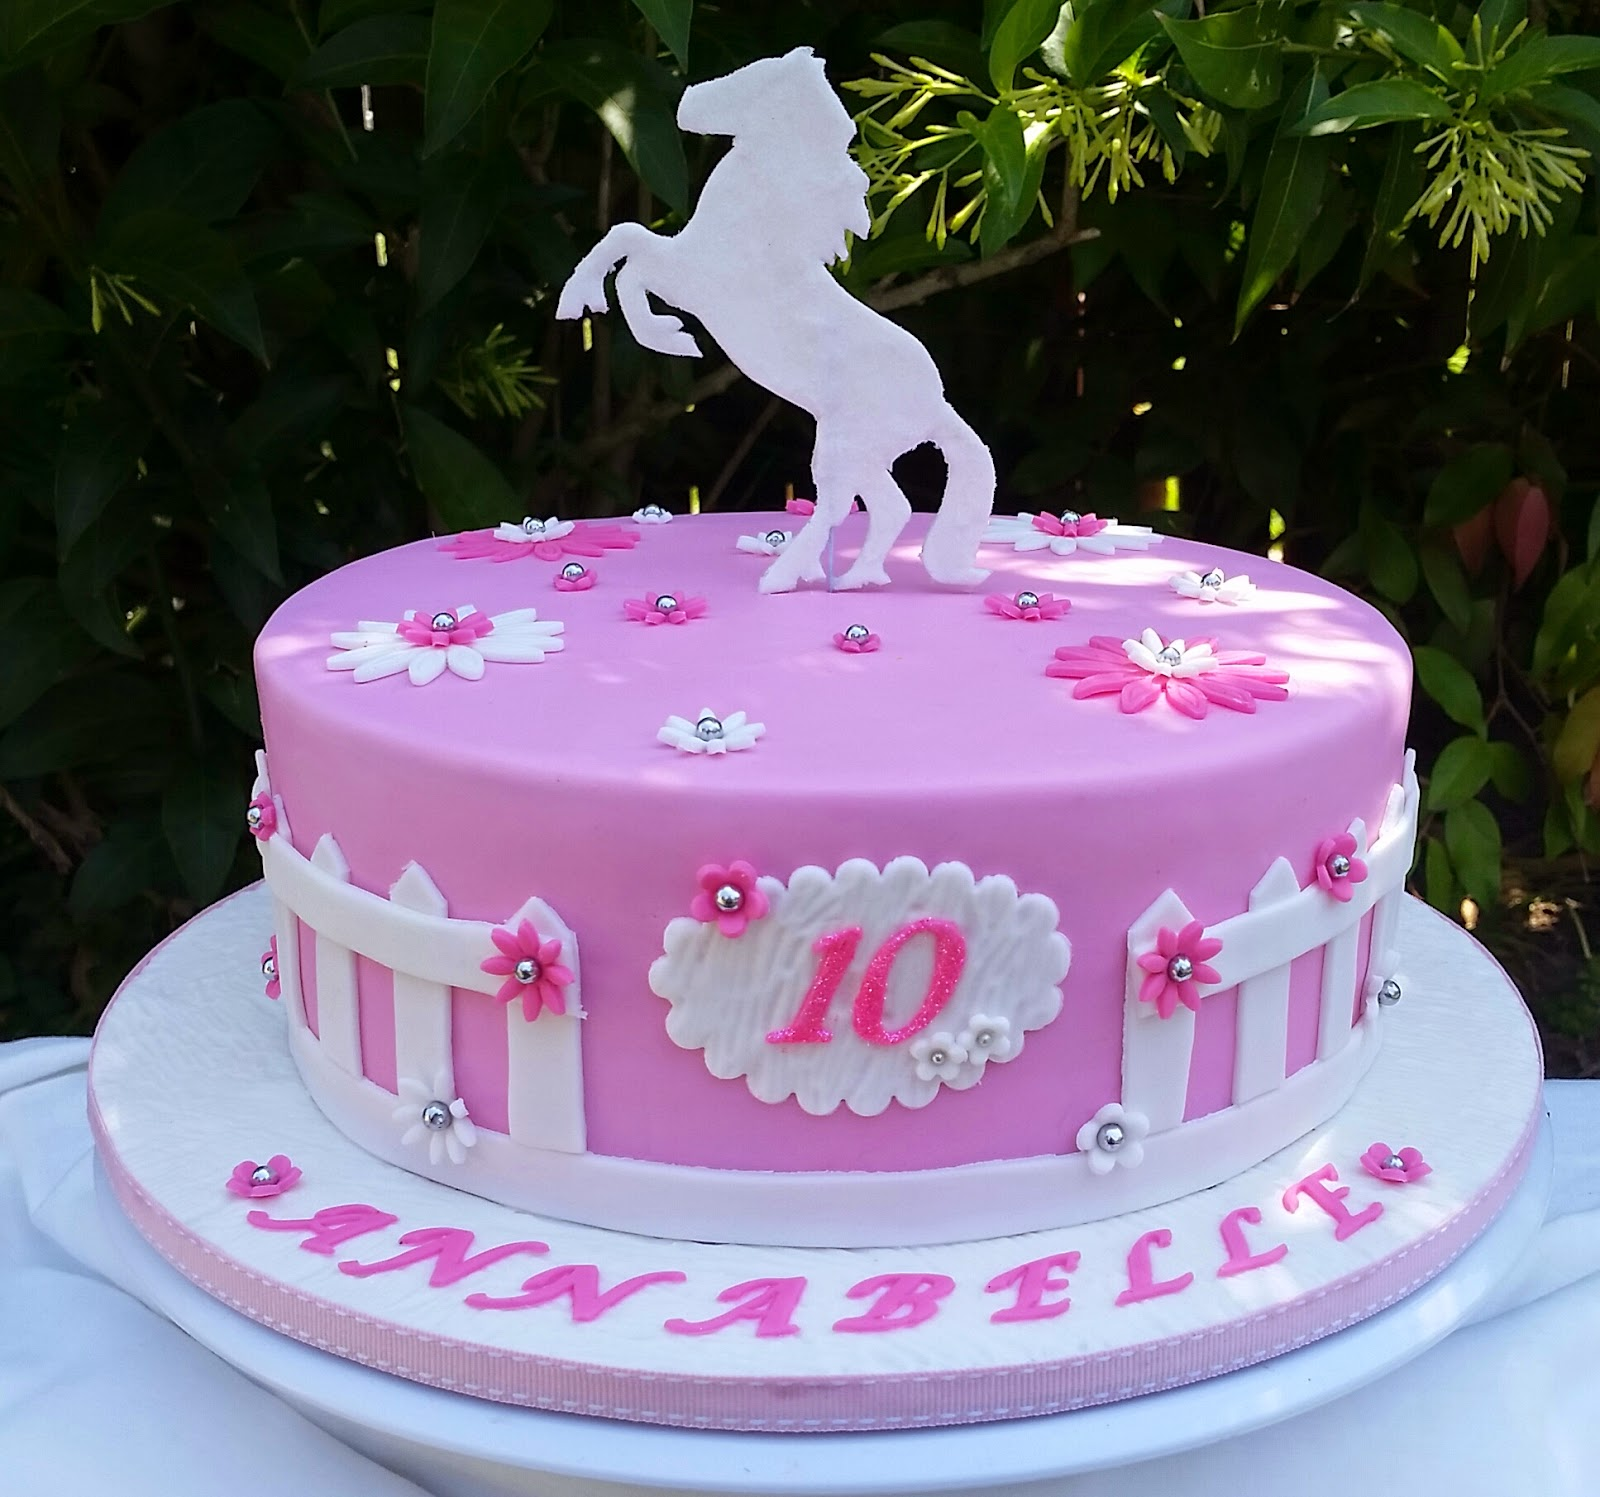 Cakes and Other Delights Giddy up.....Happy Birthday